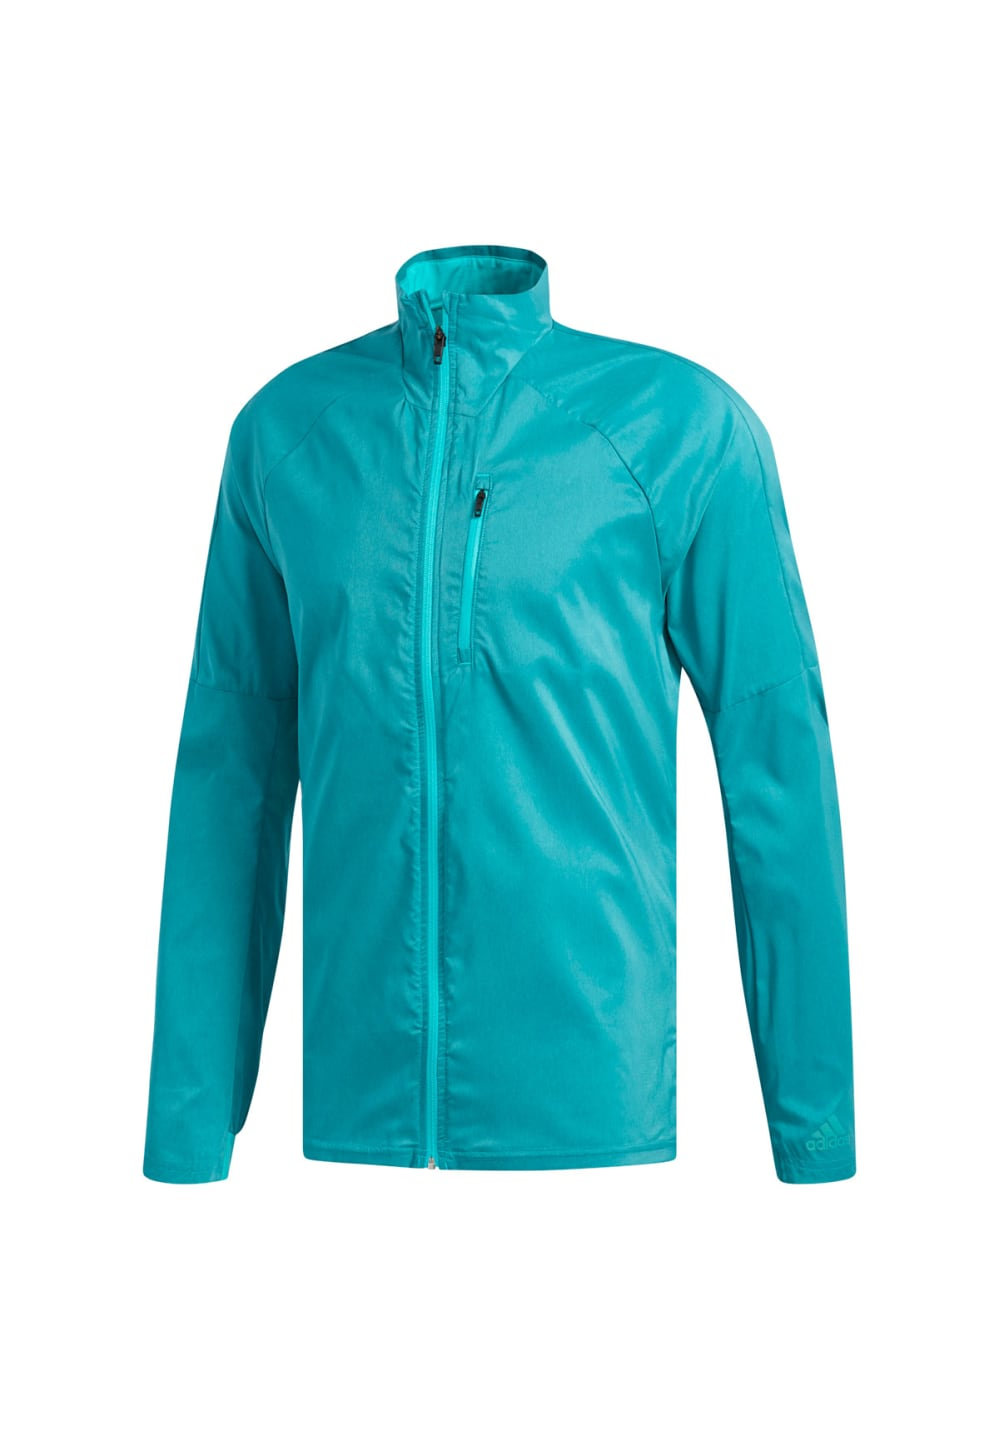 adidas Supernova Confident Three Season Jacket Jacken für Herren Blau